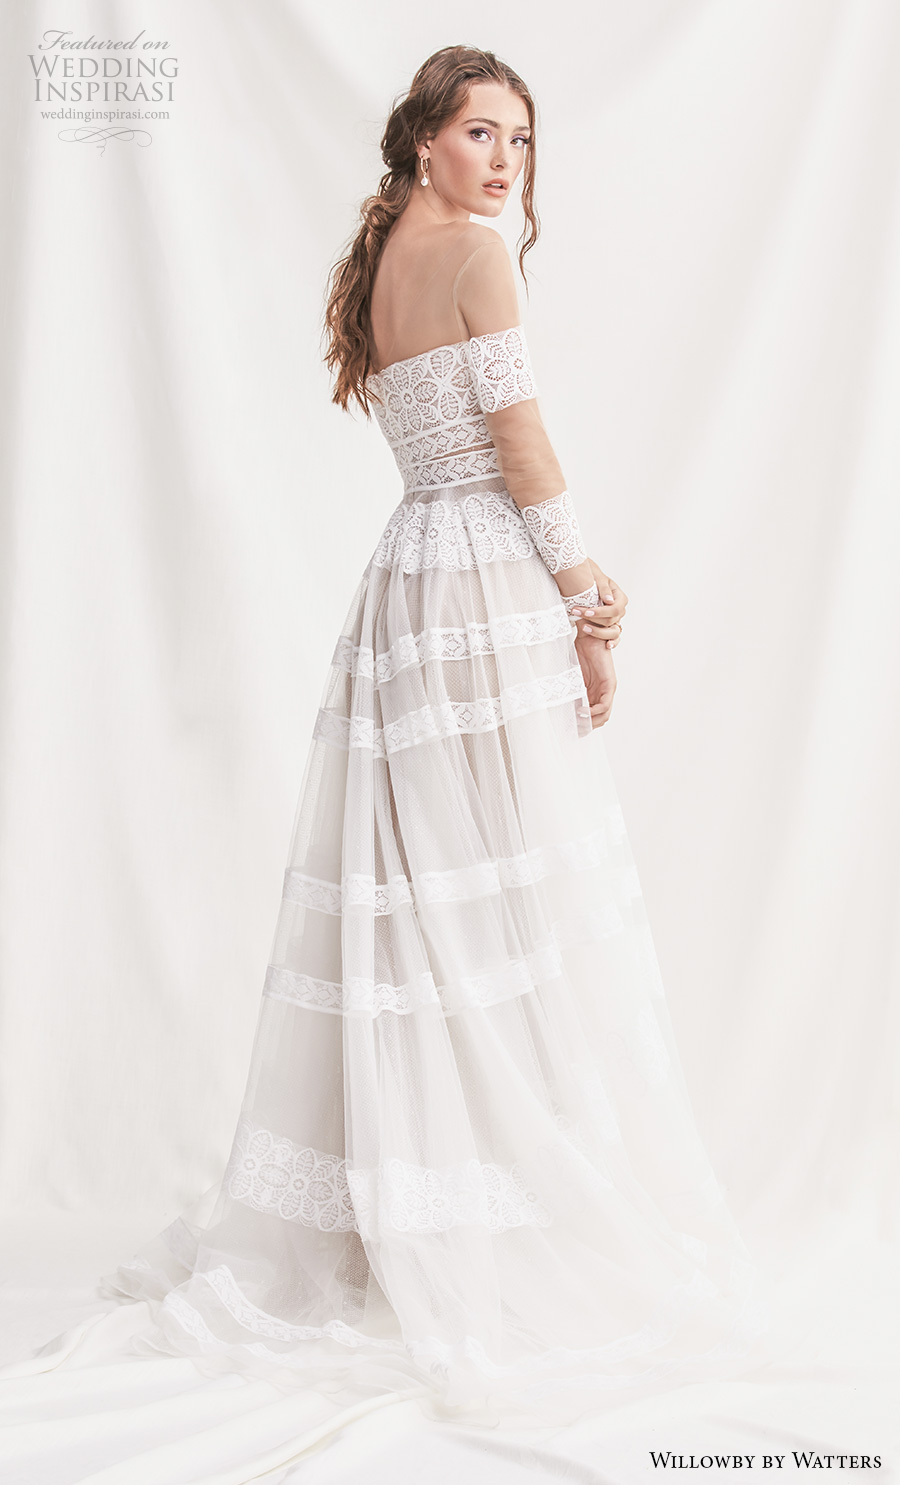 willowby by watters spring 2019 bridal long sleeves off the shoulder straight across neckline full embellishment bohemian romantic a  line wedding dress chapel train (11) bv